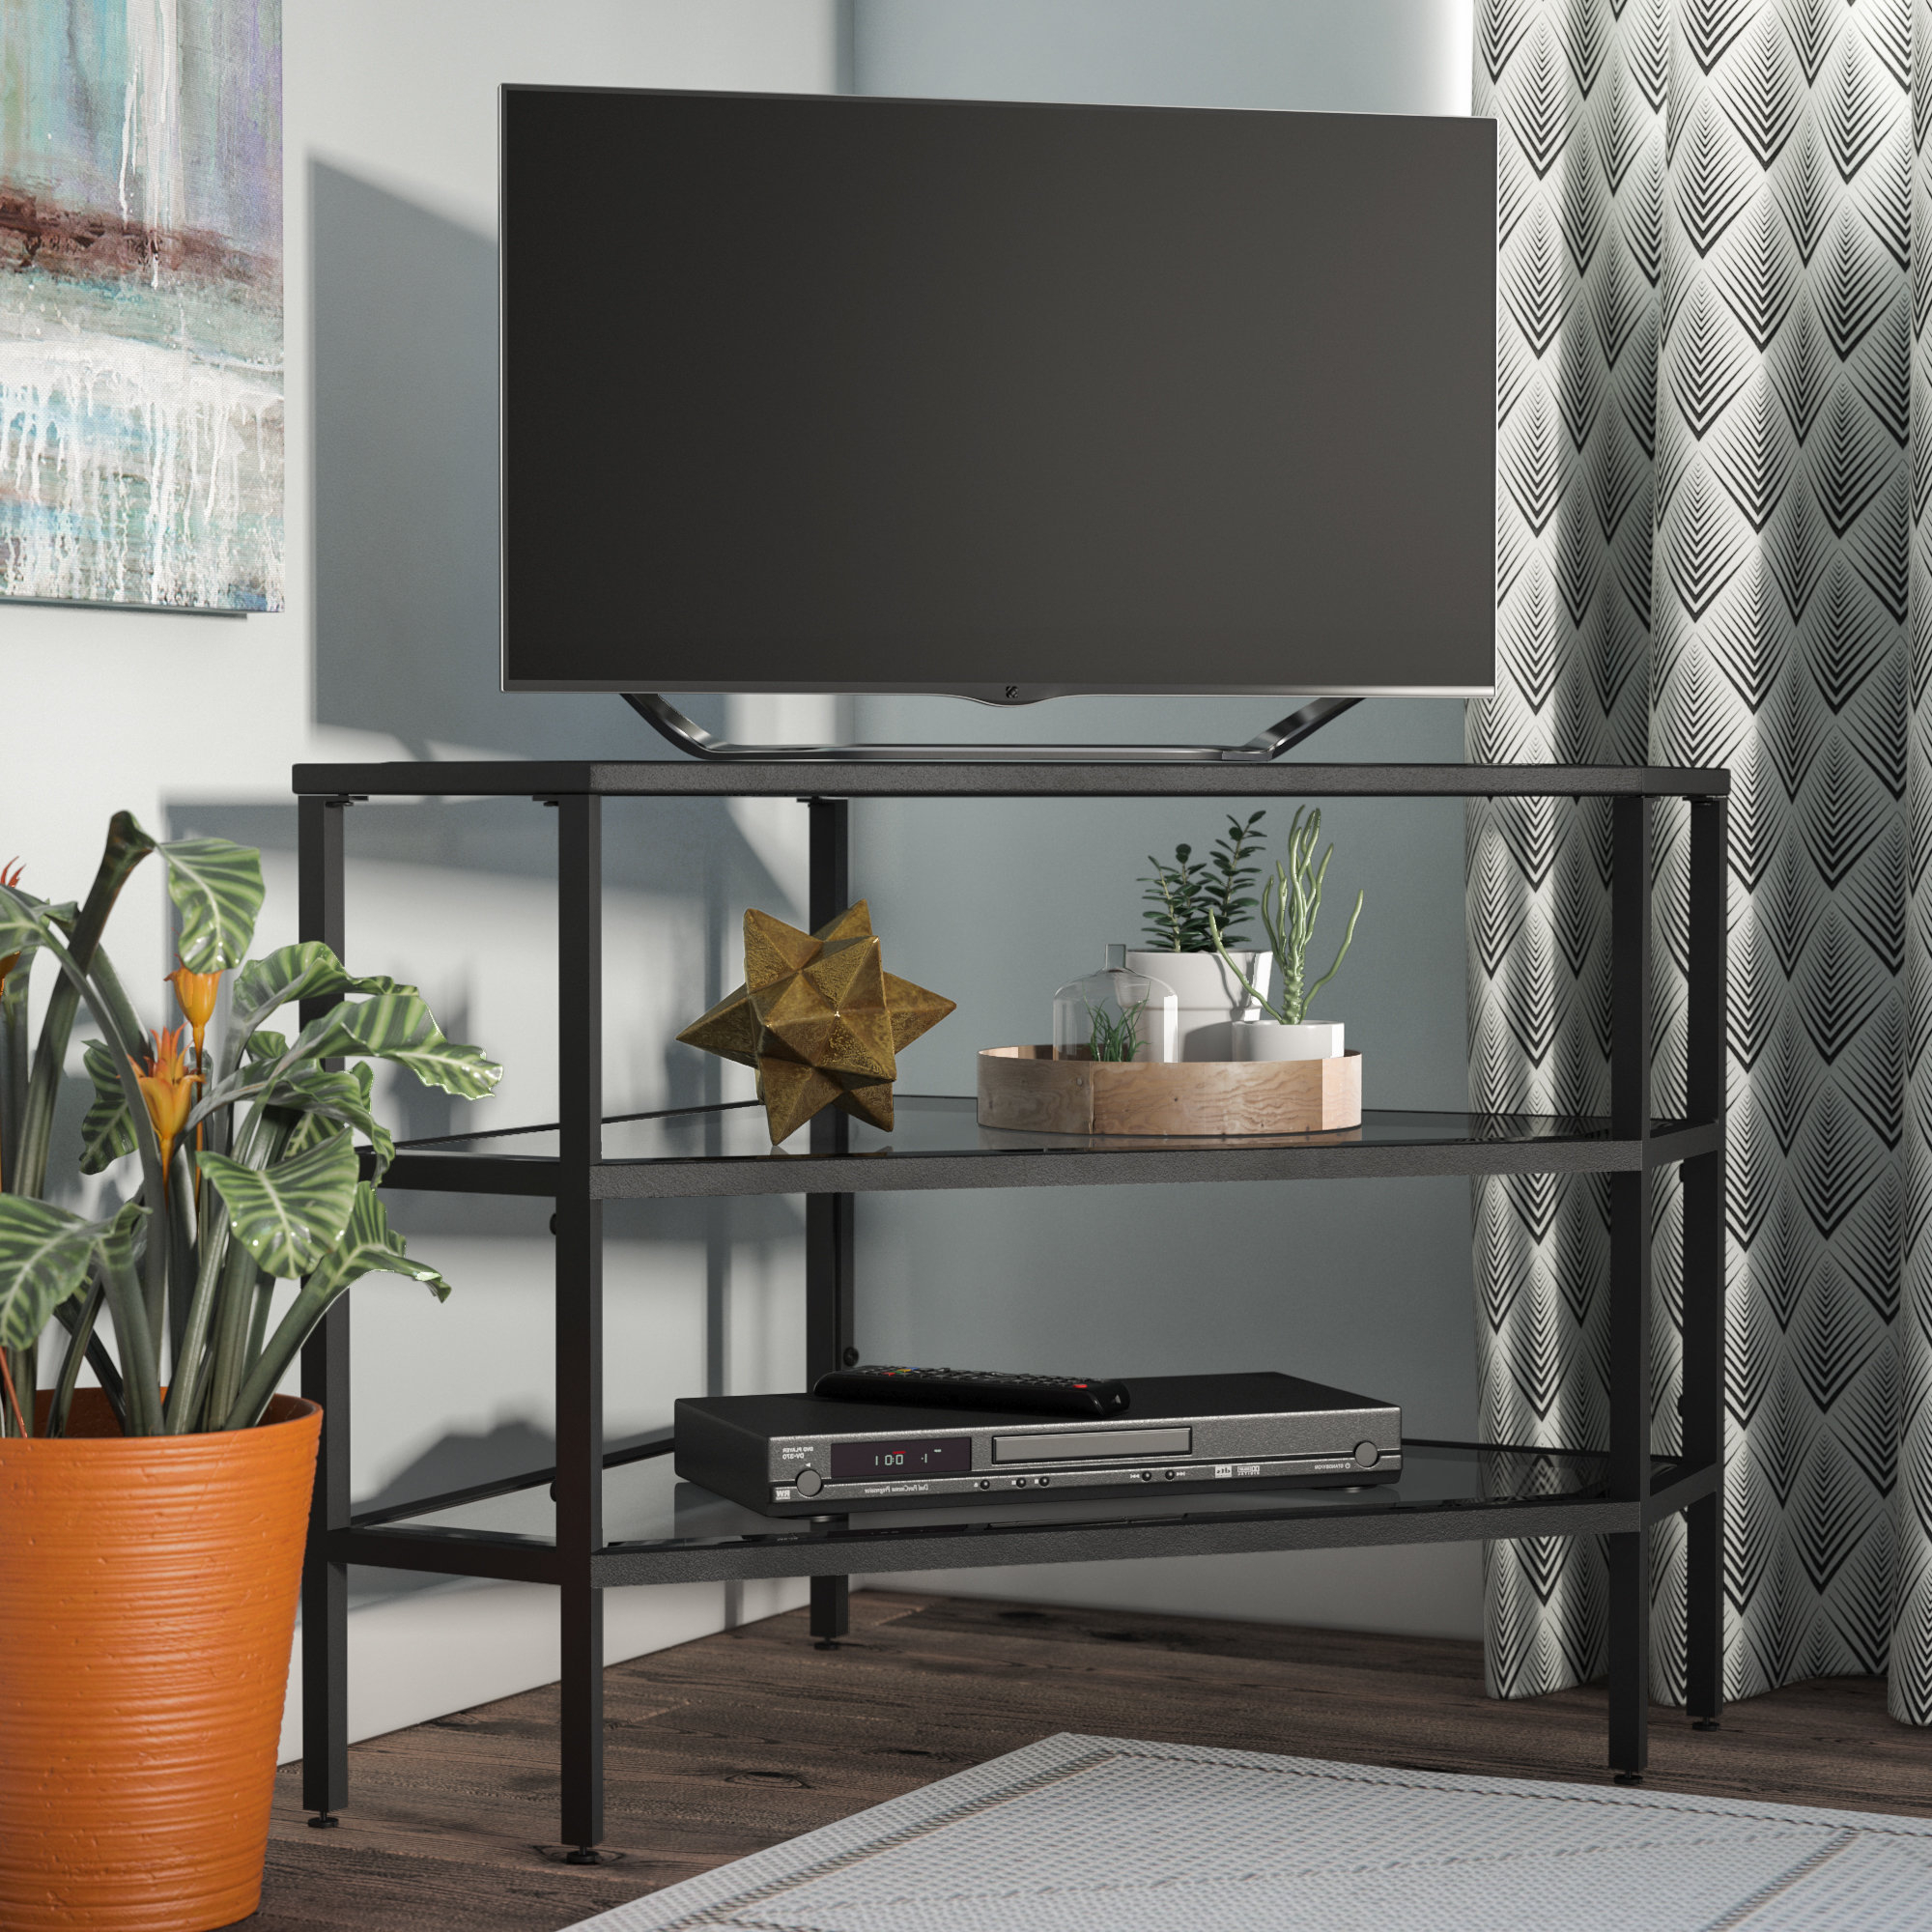 Corner Tv Stands You'll Love With 2018 Corner Tv Stands For 60 Inch Flat Screens (View 9 of 20)